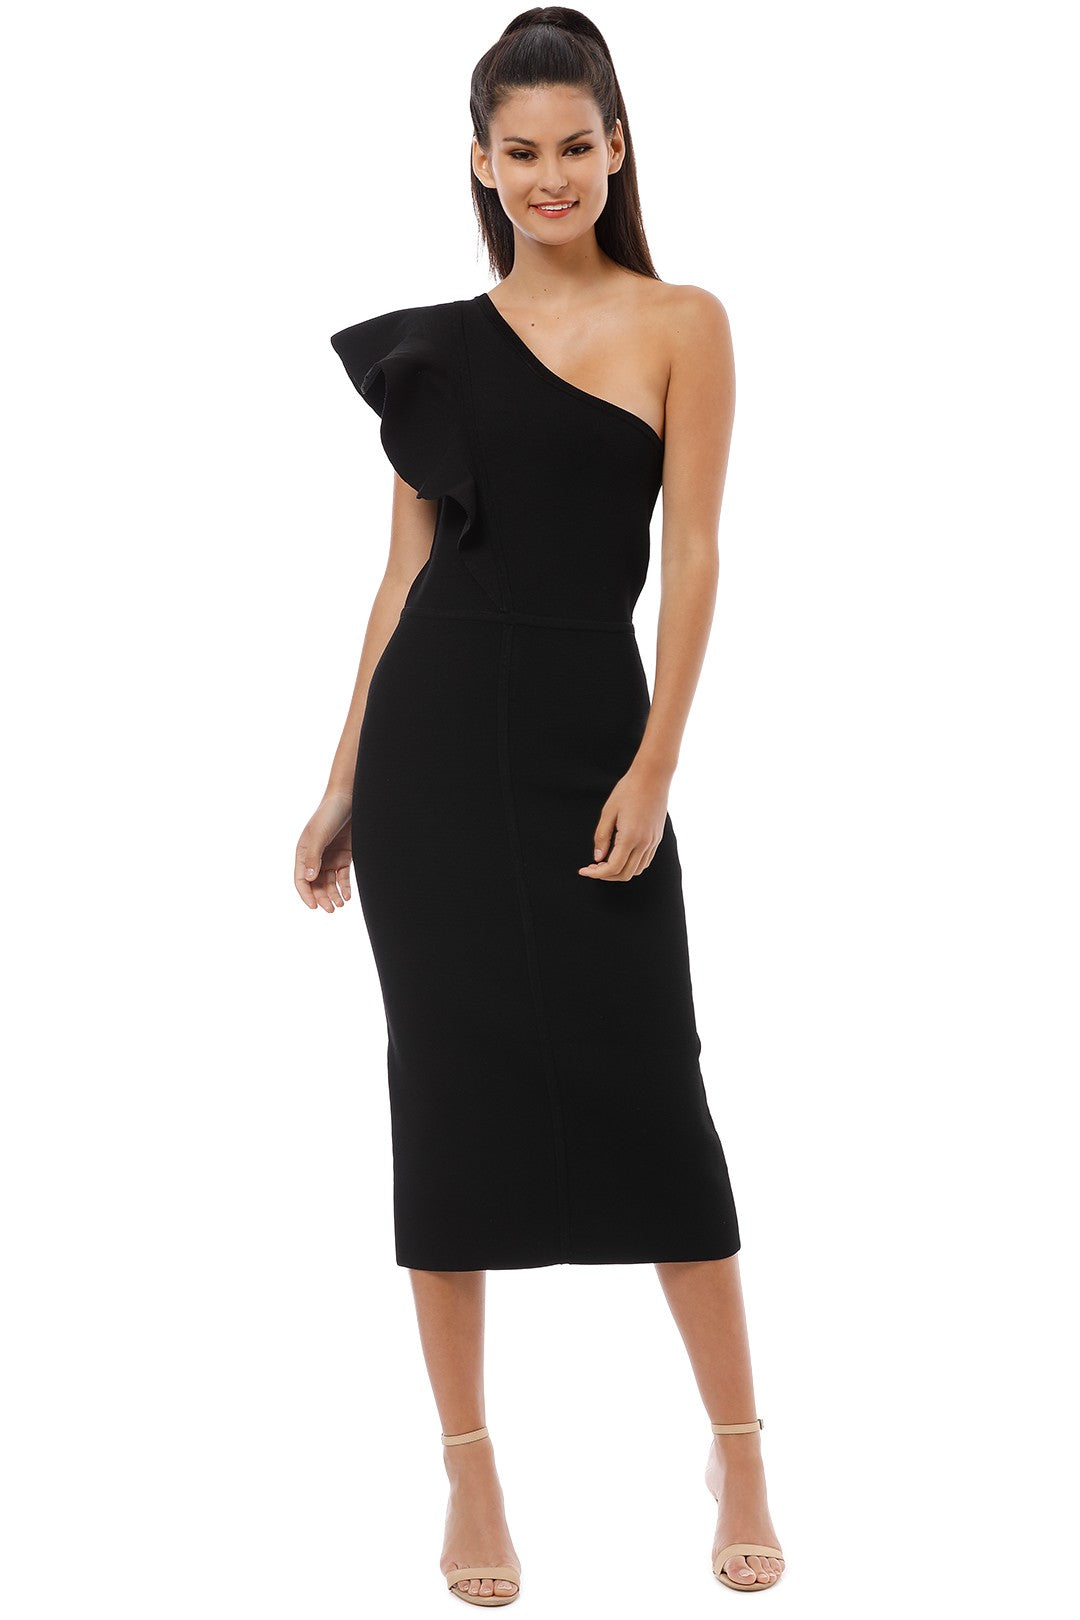 Ginger & Smart Anchor One Shoulder Dress in Black